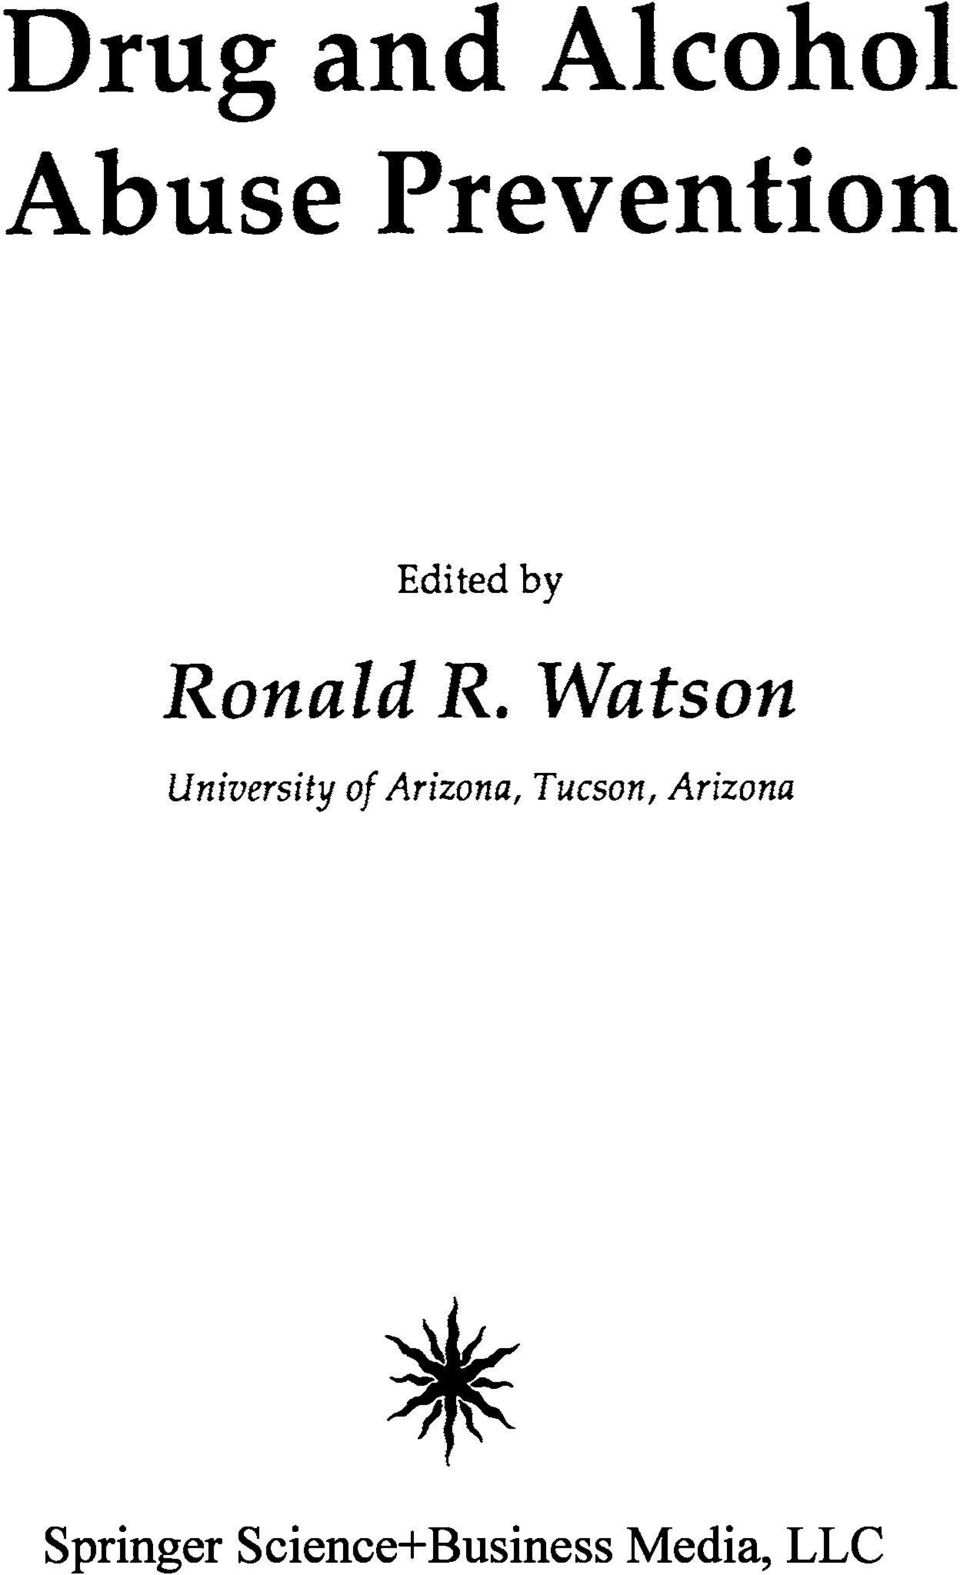 Watson University of Arizona,